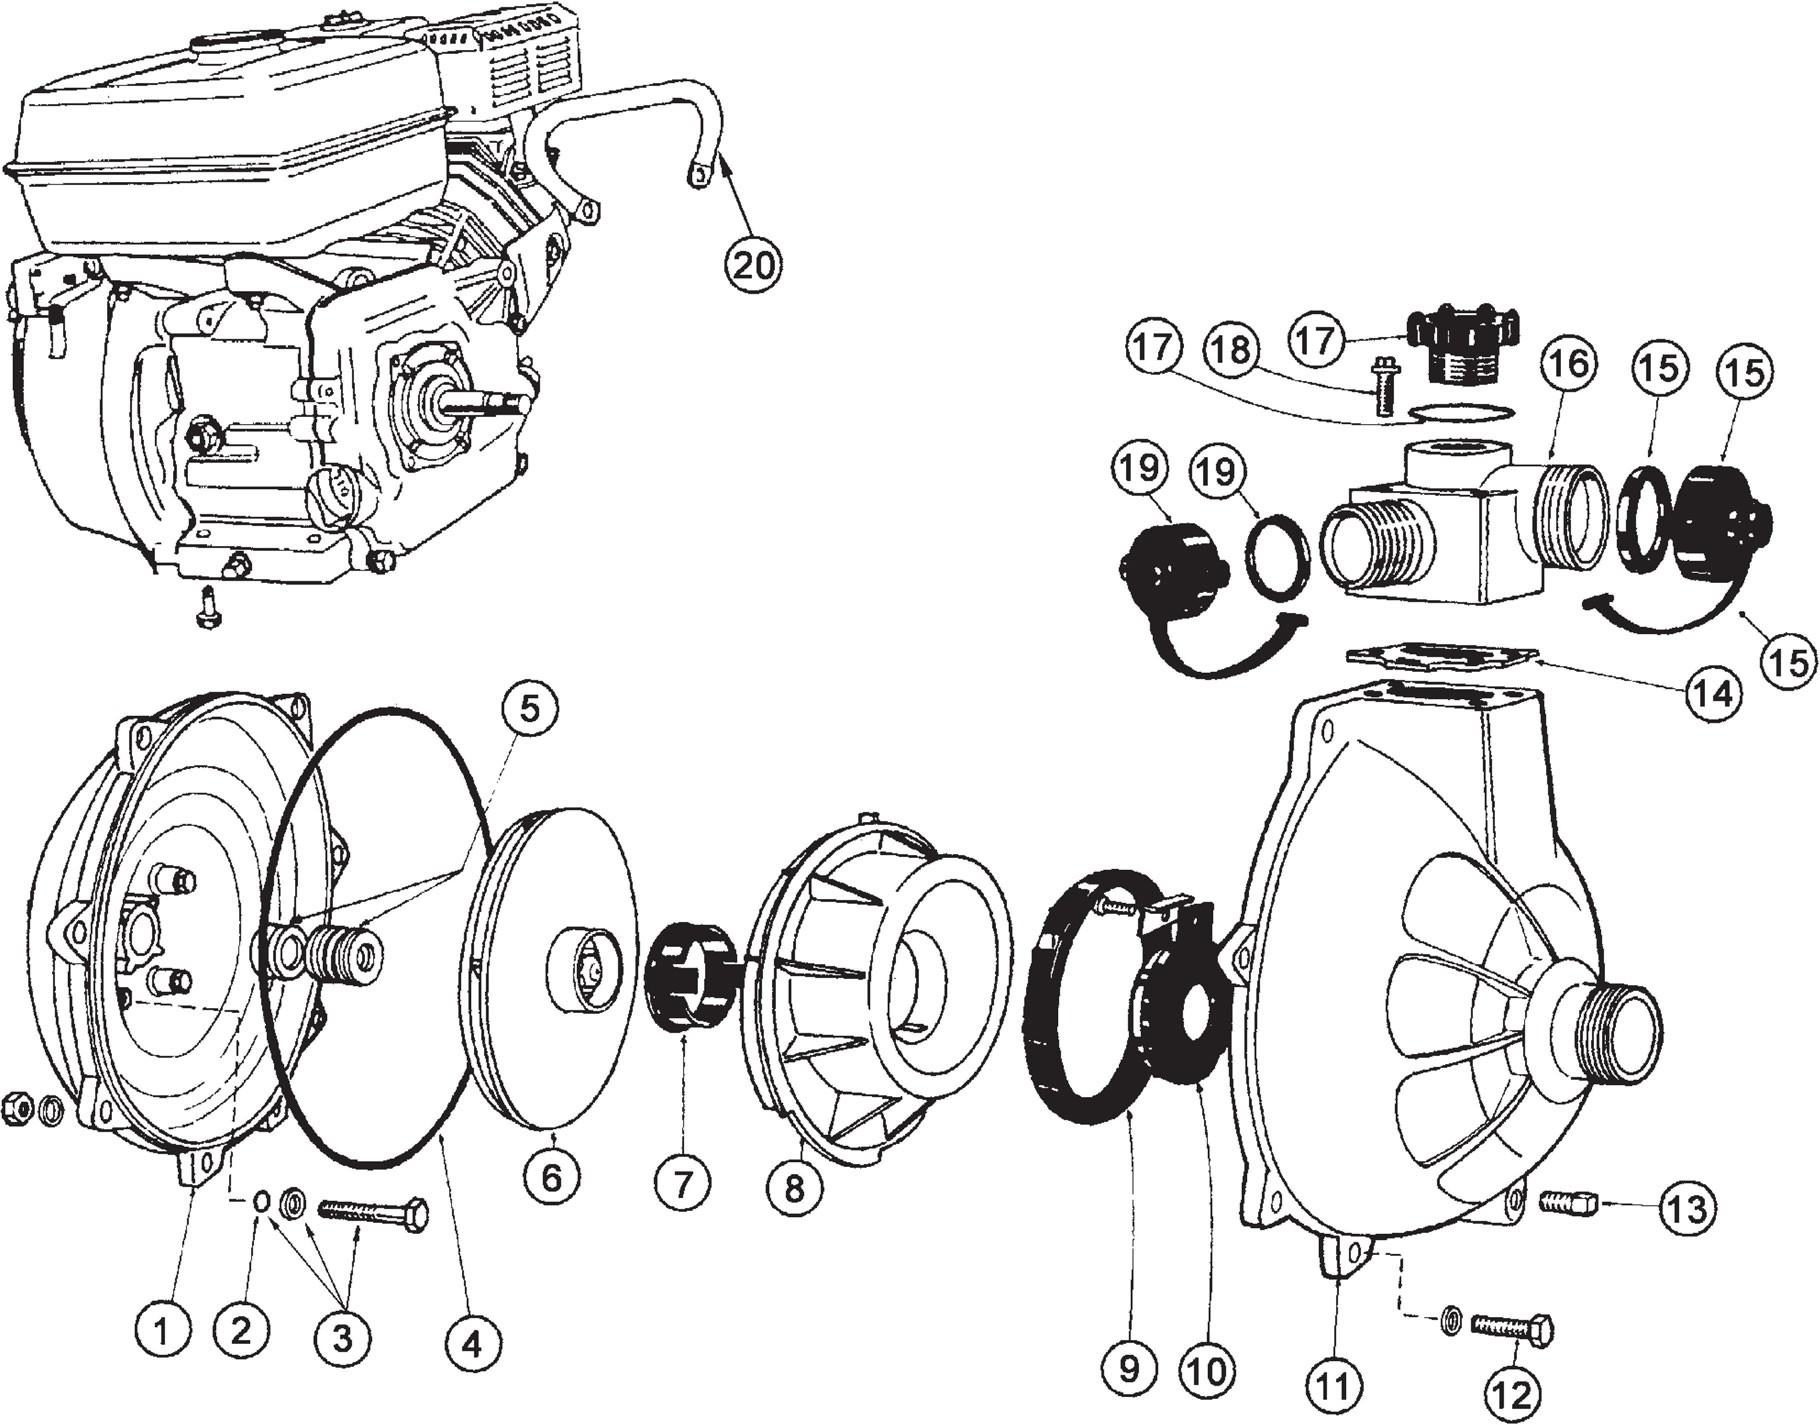 Crf230f Engine Diagram additionally Honda 6 5 Hp Engine Parts Diagram together with CRF230Fcarb further Oem4 moreover Wiring Diagram 1998 Honda Vt1100c. on crf230f carburetor diagram